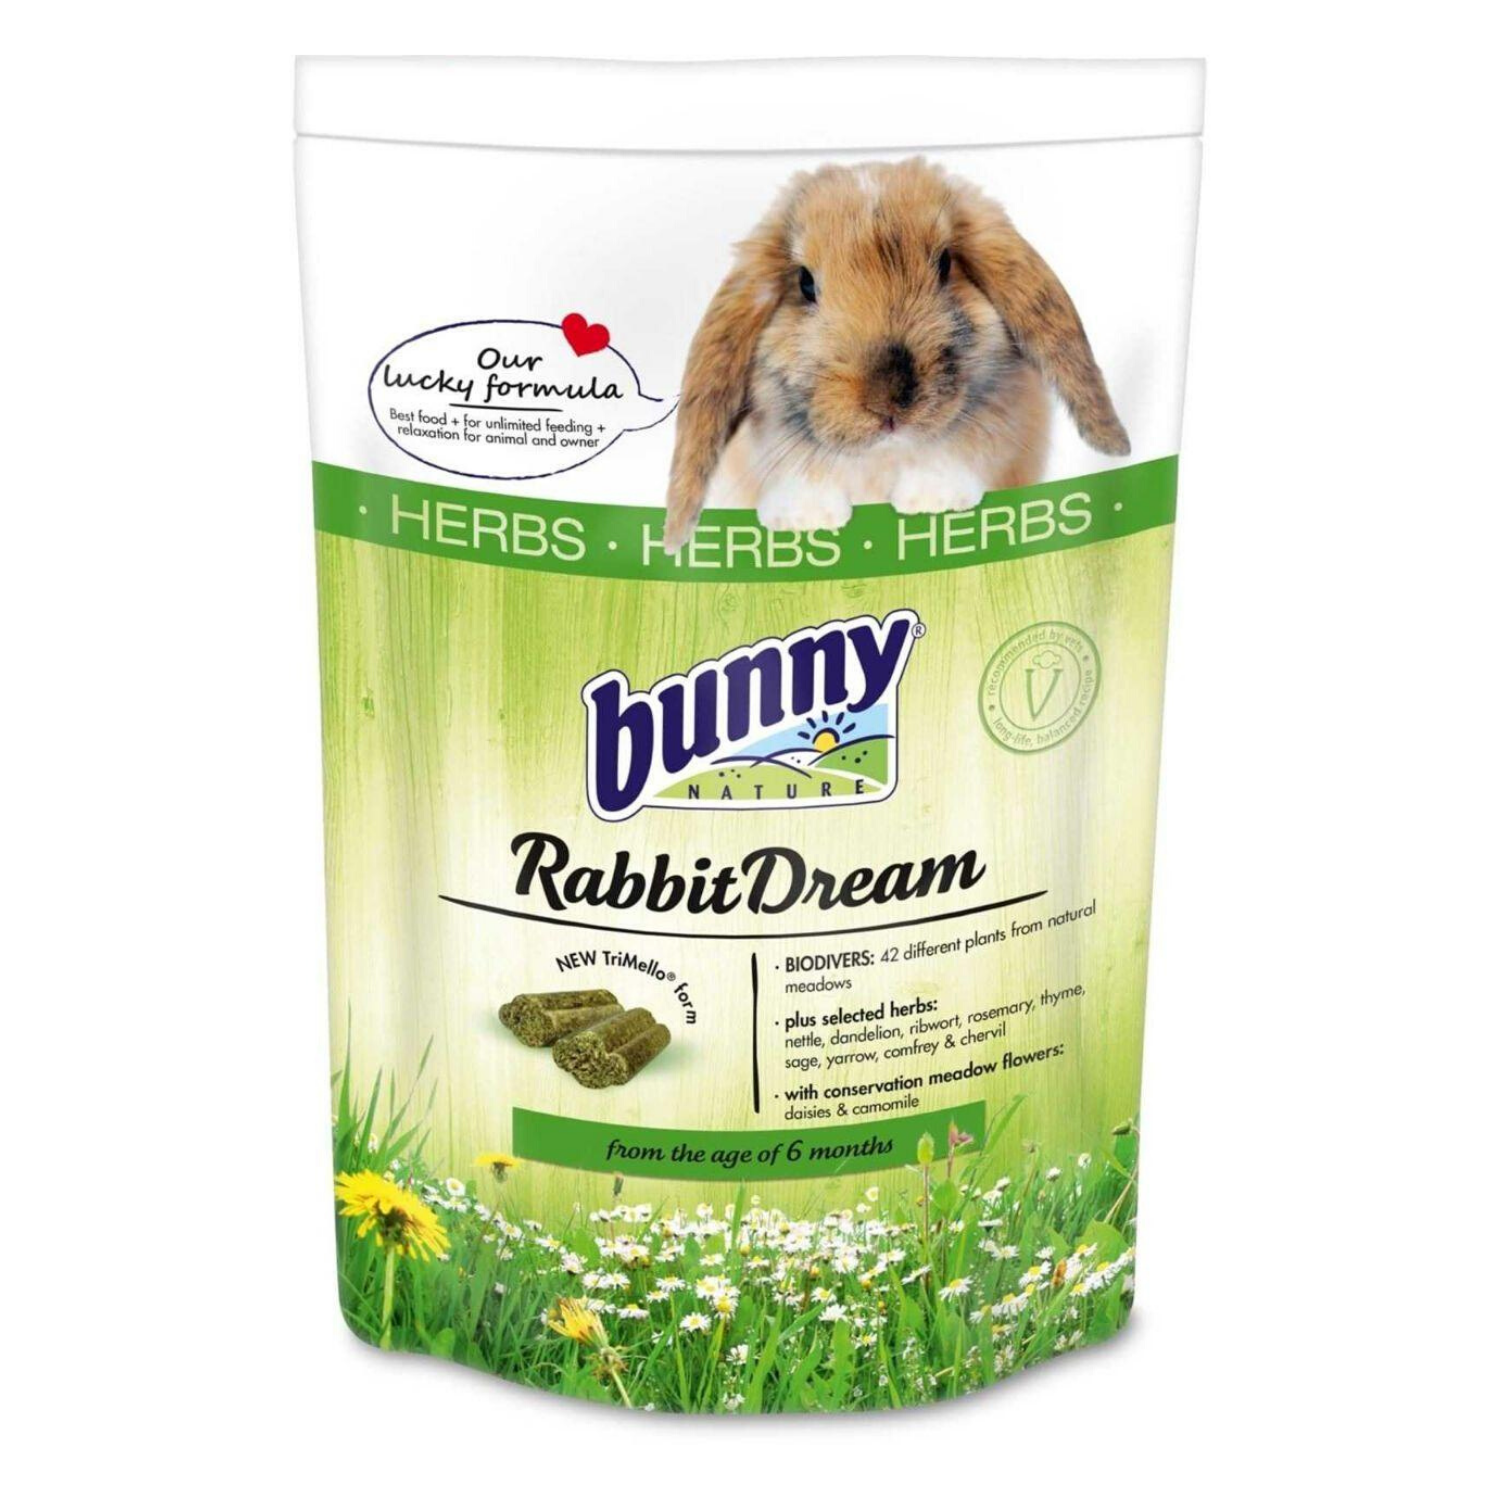 Bunny Nature Rabbit Dream Herbs - 750g / 1.5kg